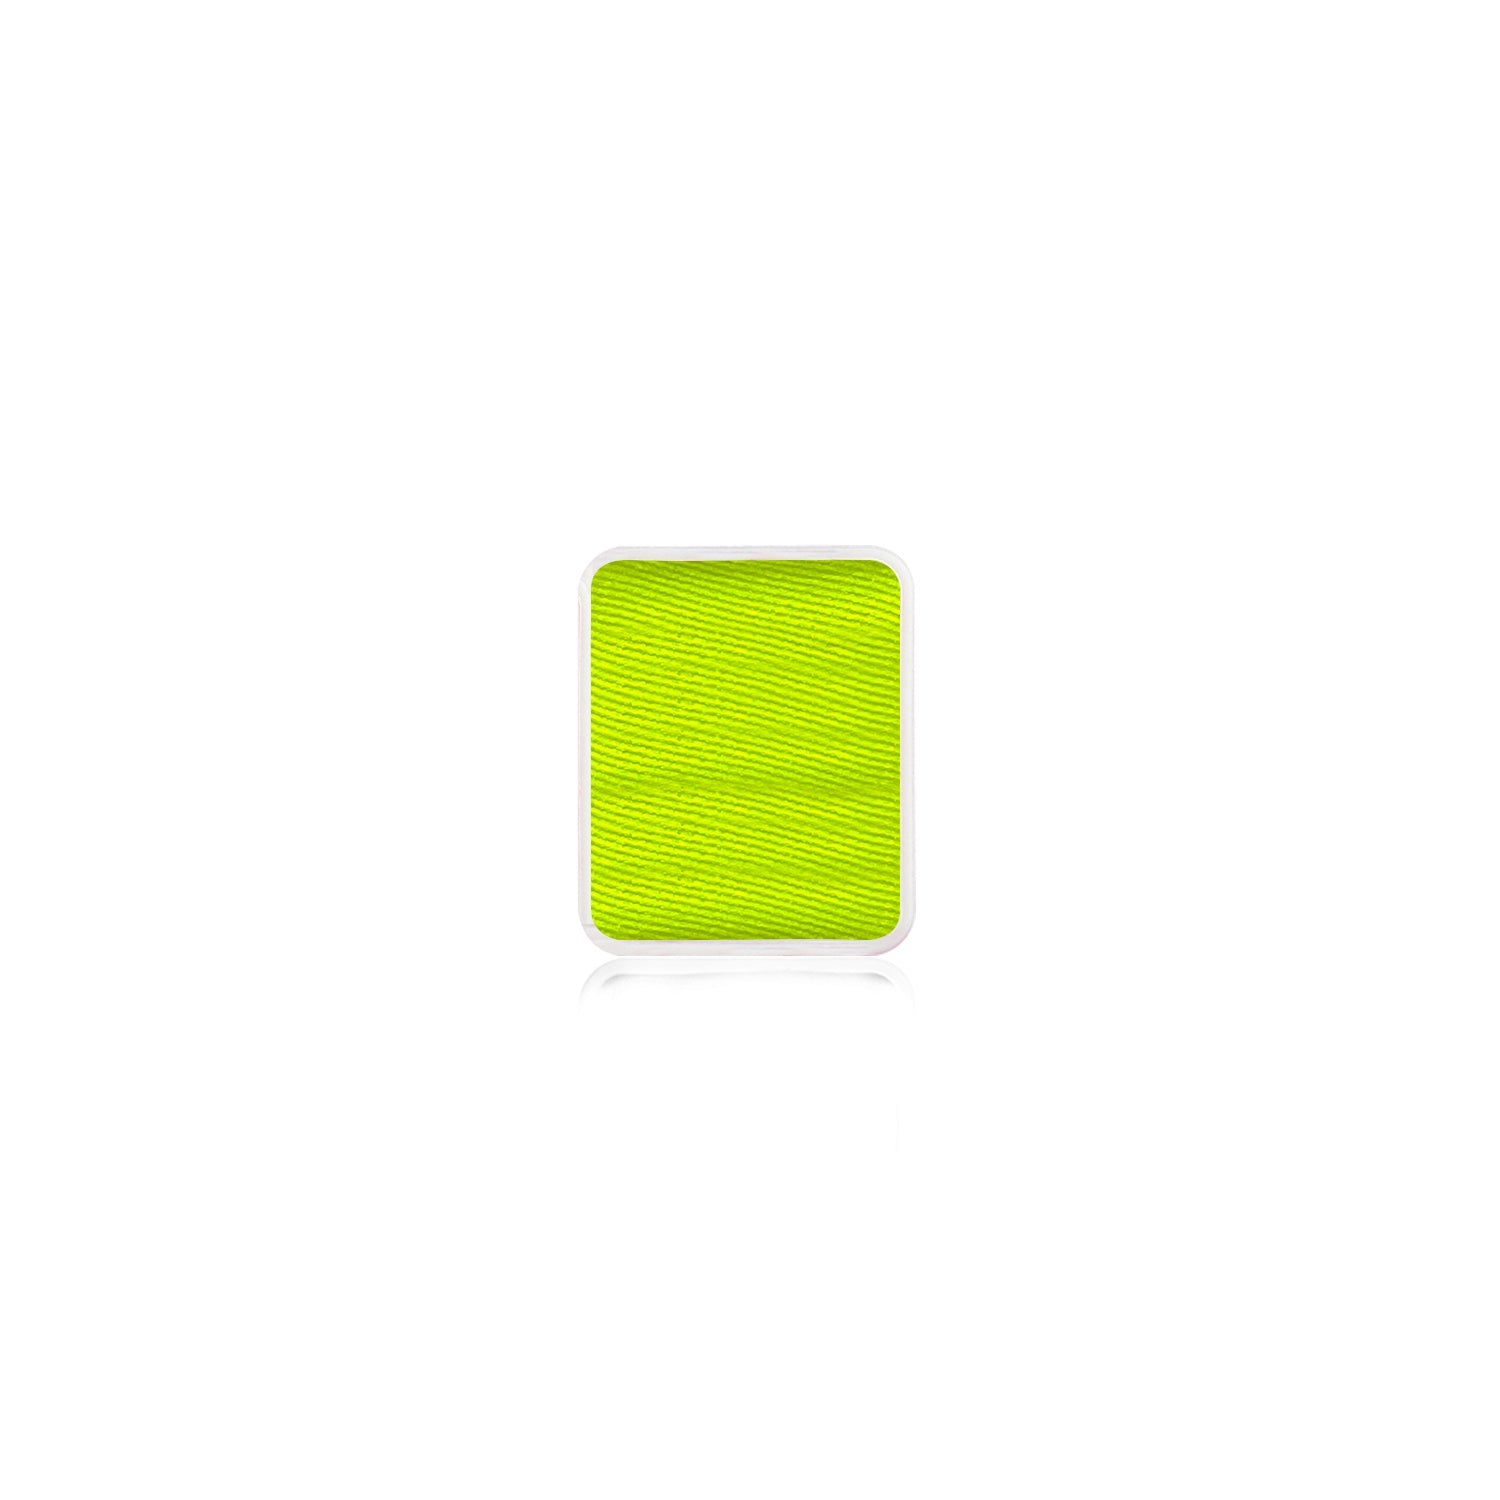 Kraze FX Face Paint Palette Refill - Neon Yellow (0.21 oz/6 gm)